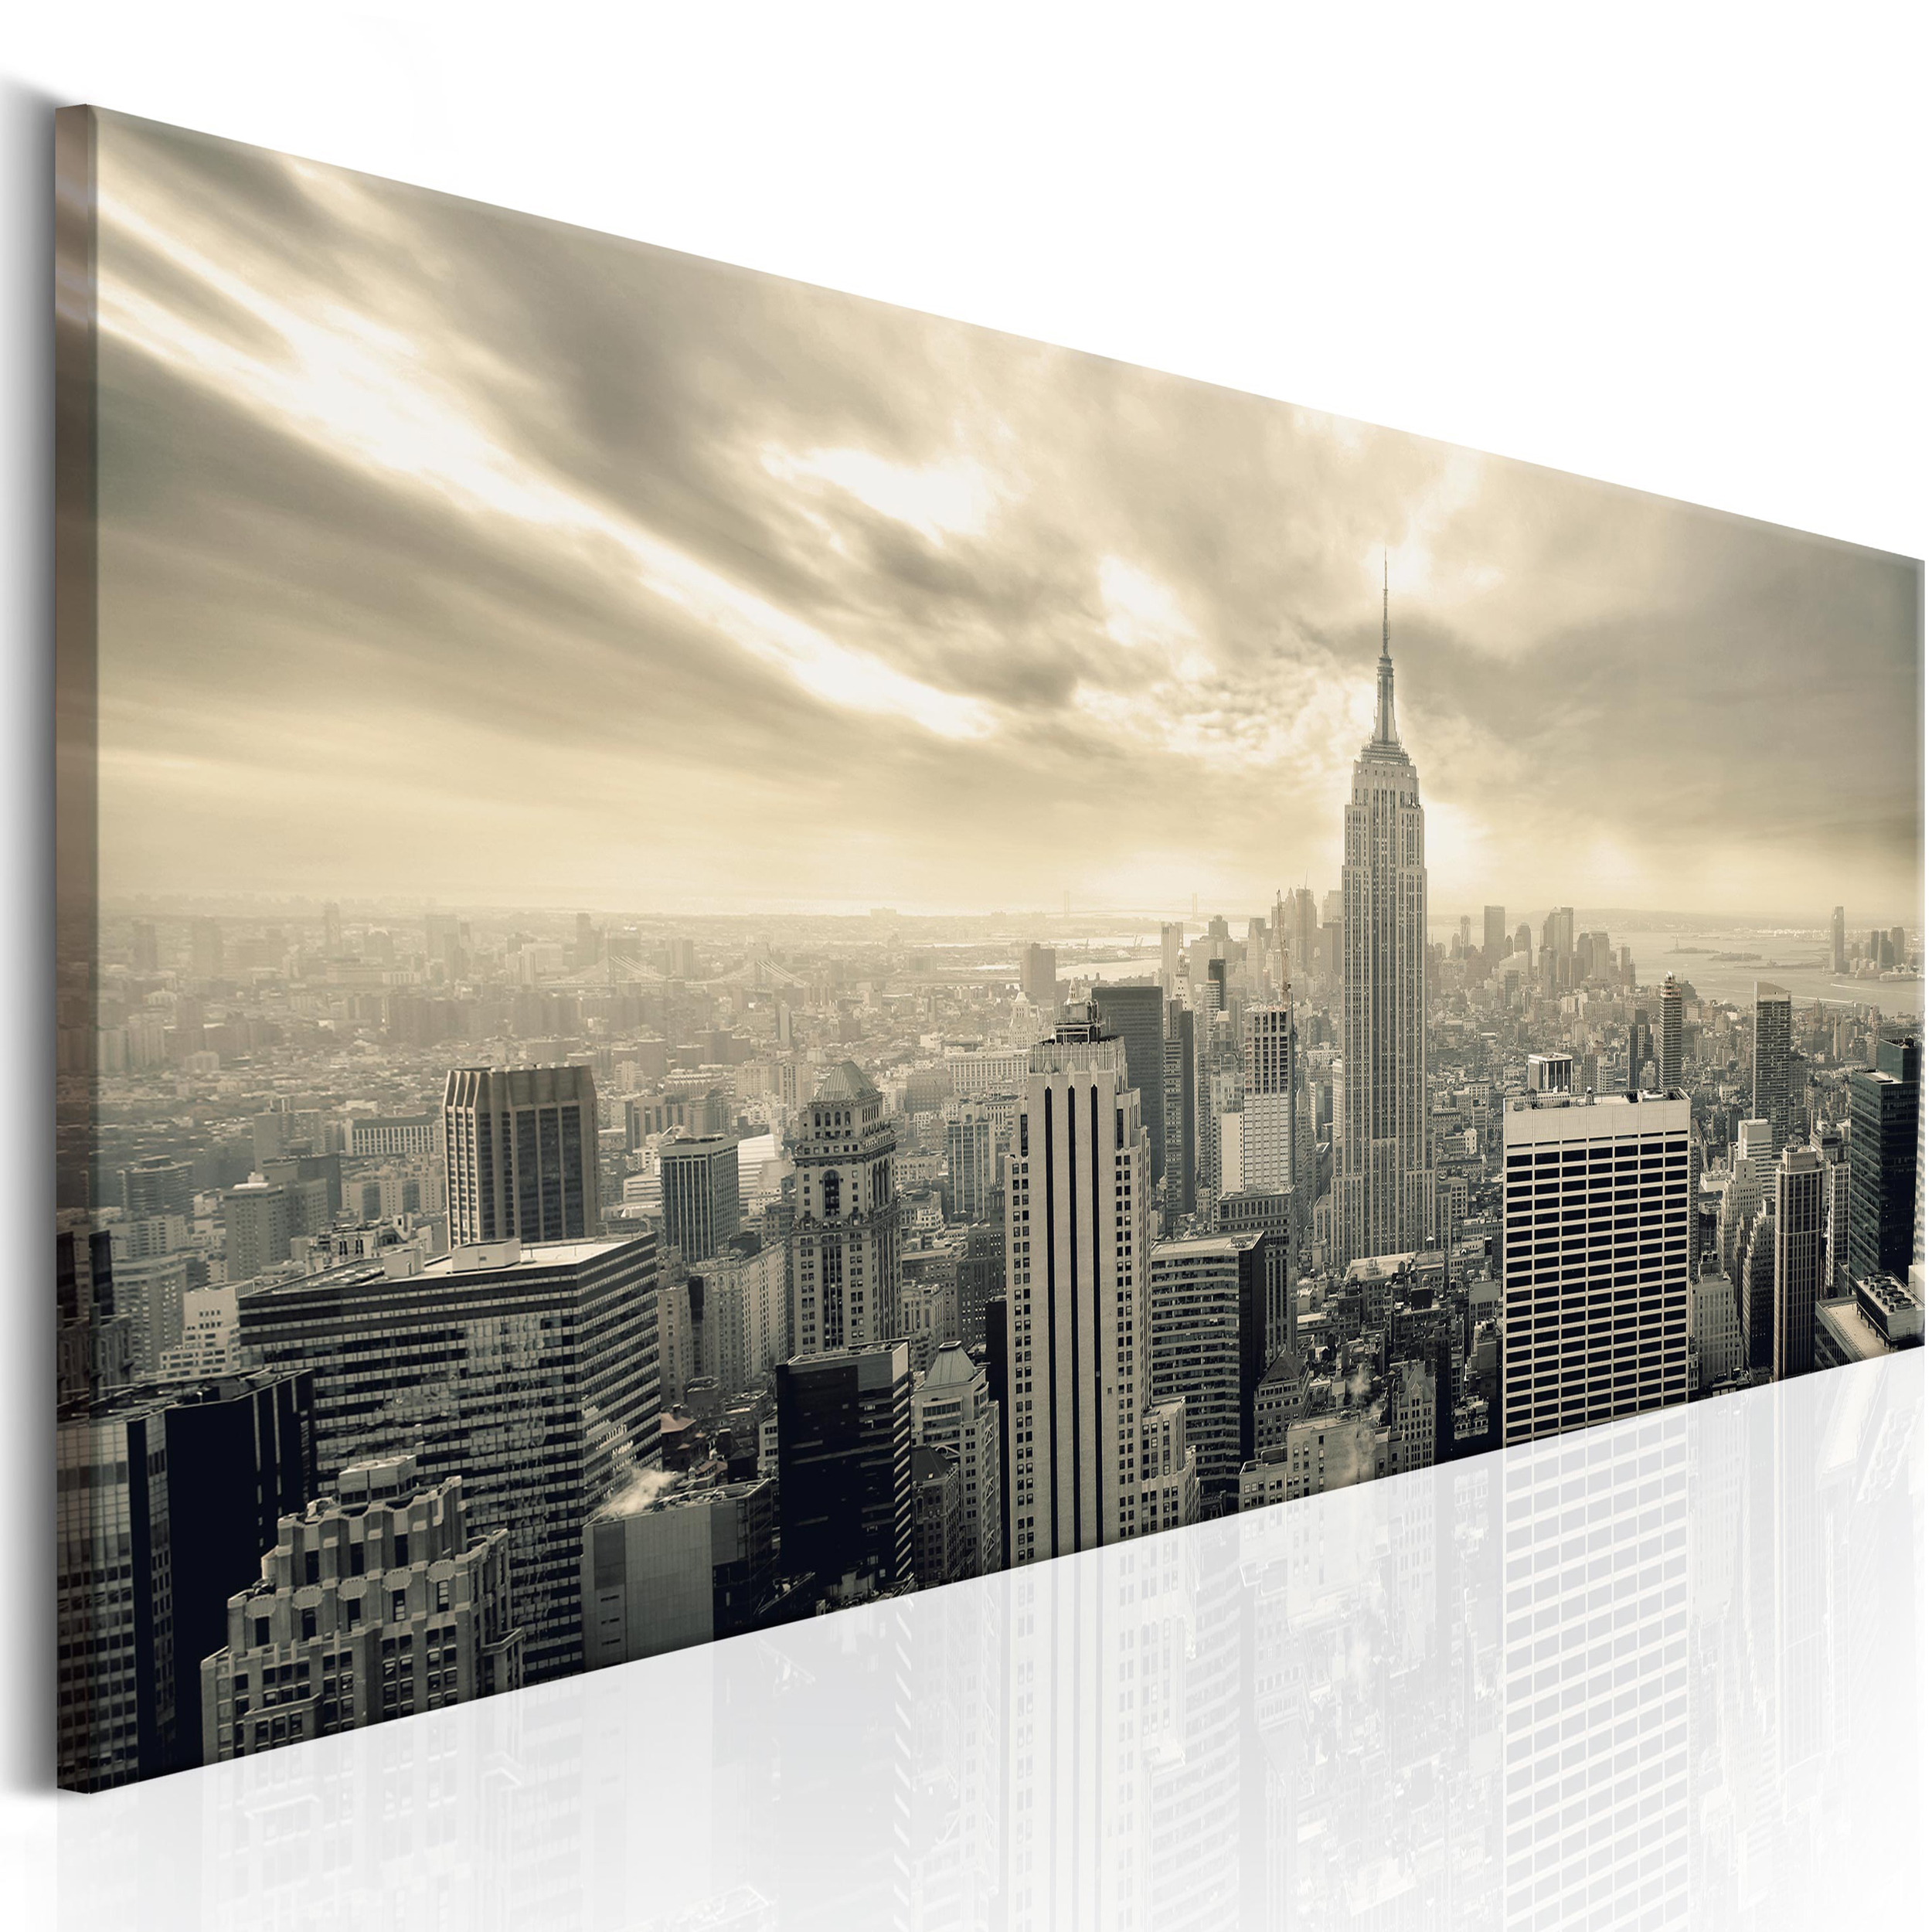 leinwand bilder new york skyline stadt wandbilder xxl wohnzimmer gro auswahl ebay. Black Bedroom Furniture Sets. Home Design Ideas